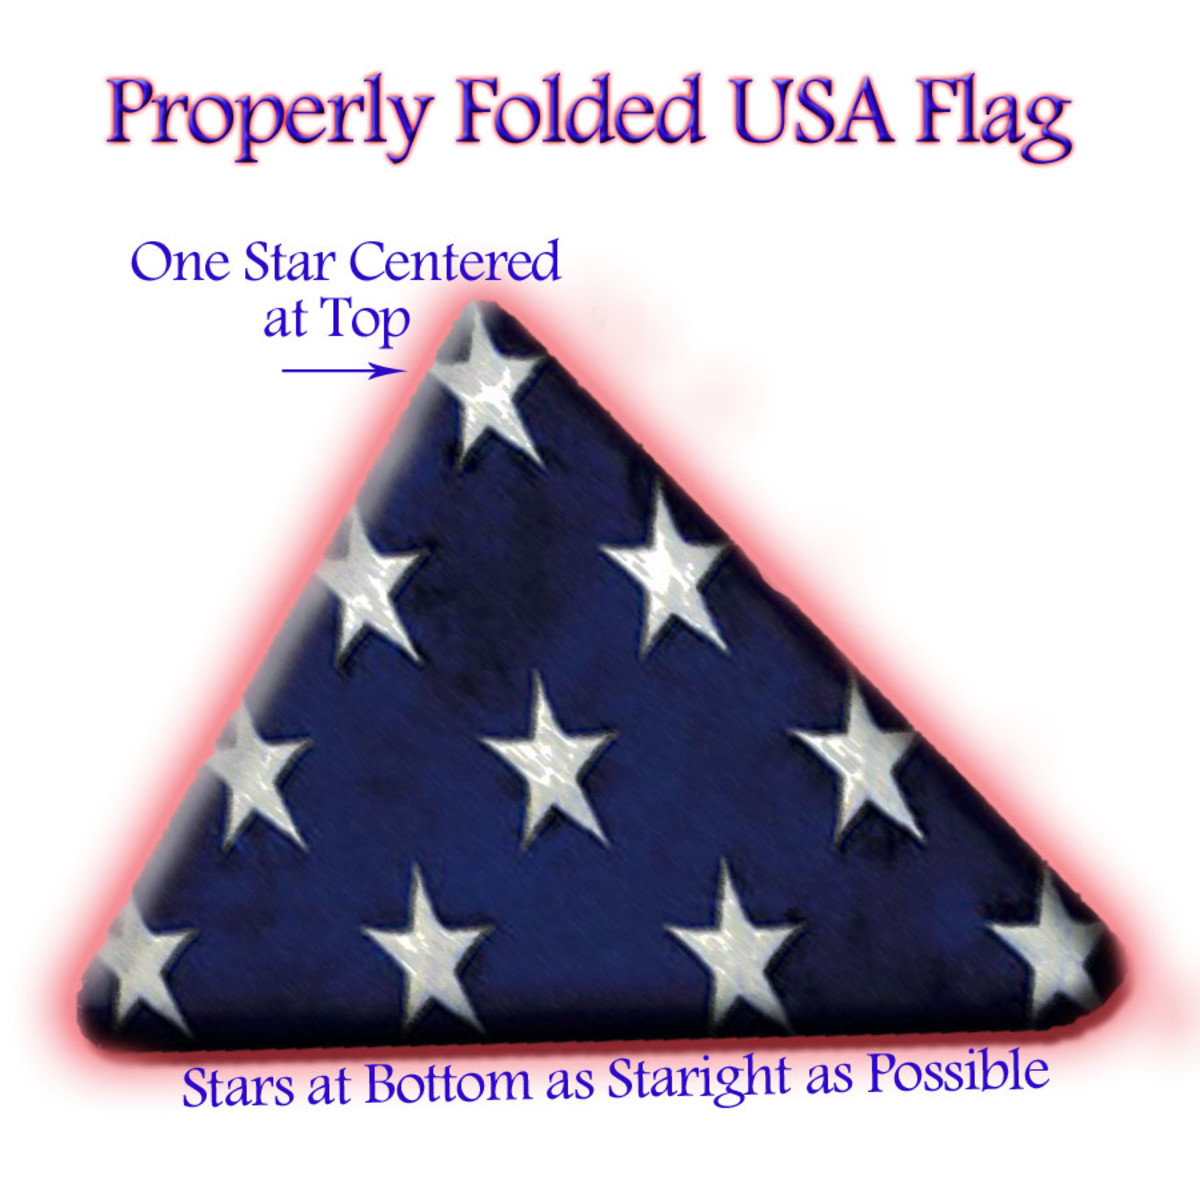 A properly folded American Flag has a single star centered at top.